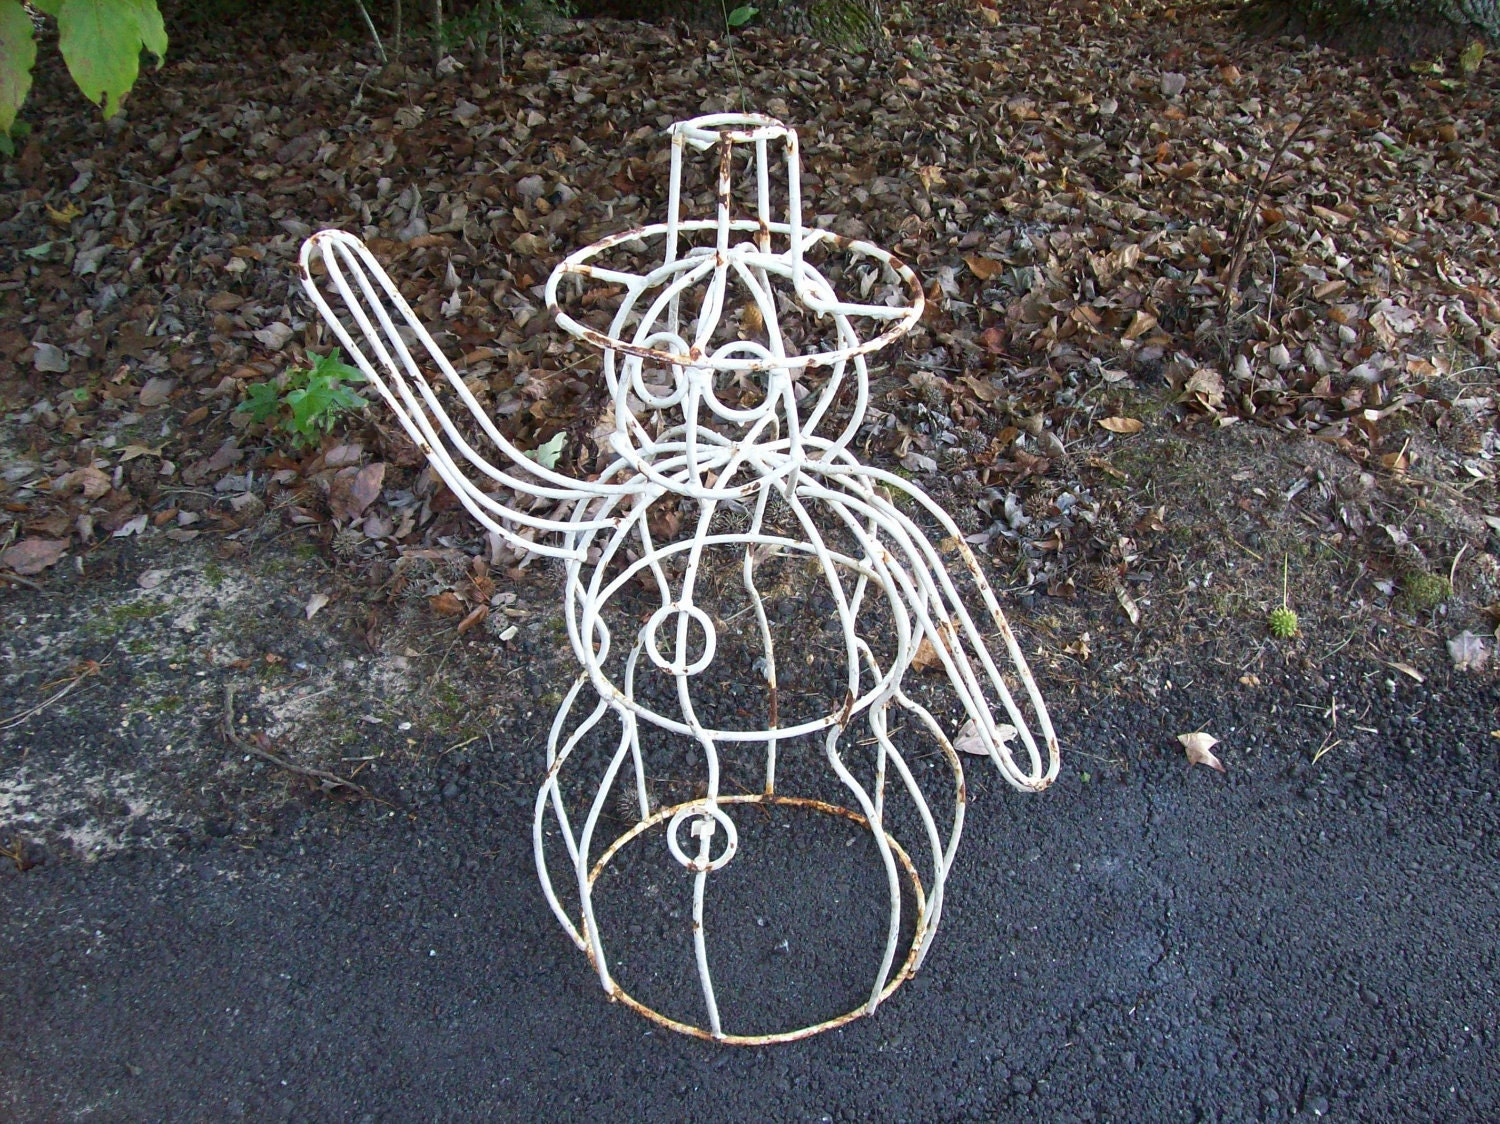 Wrought iron outdoor decor - Metal Rustic Garden Decor Photograph Wrought Iron Snowman Garden Idea